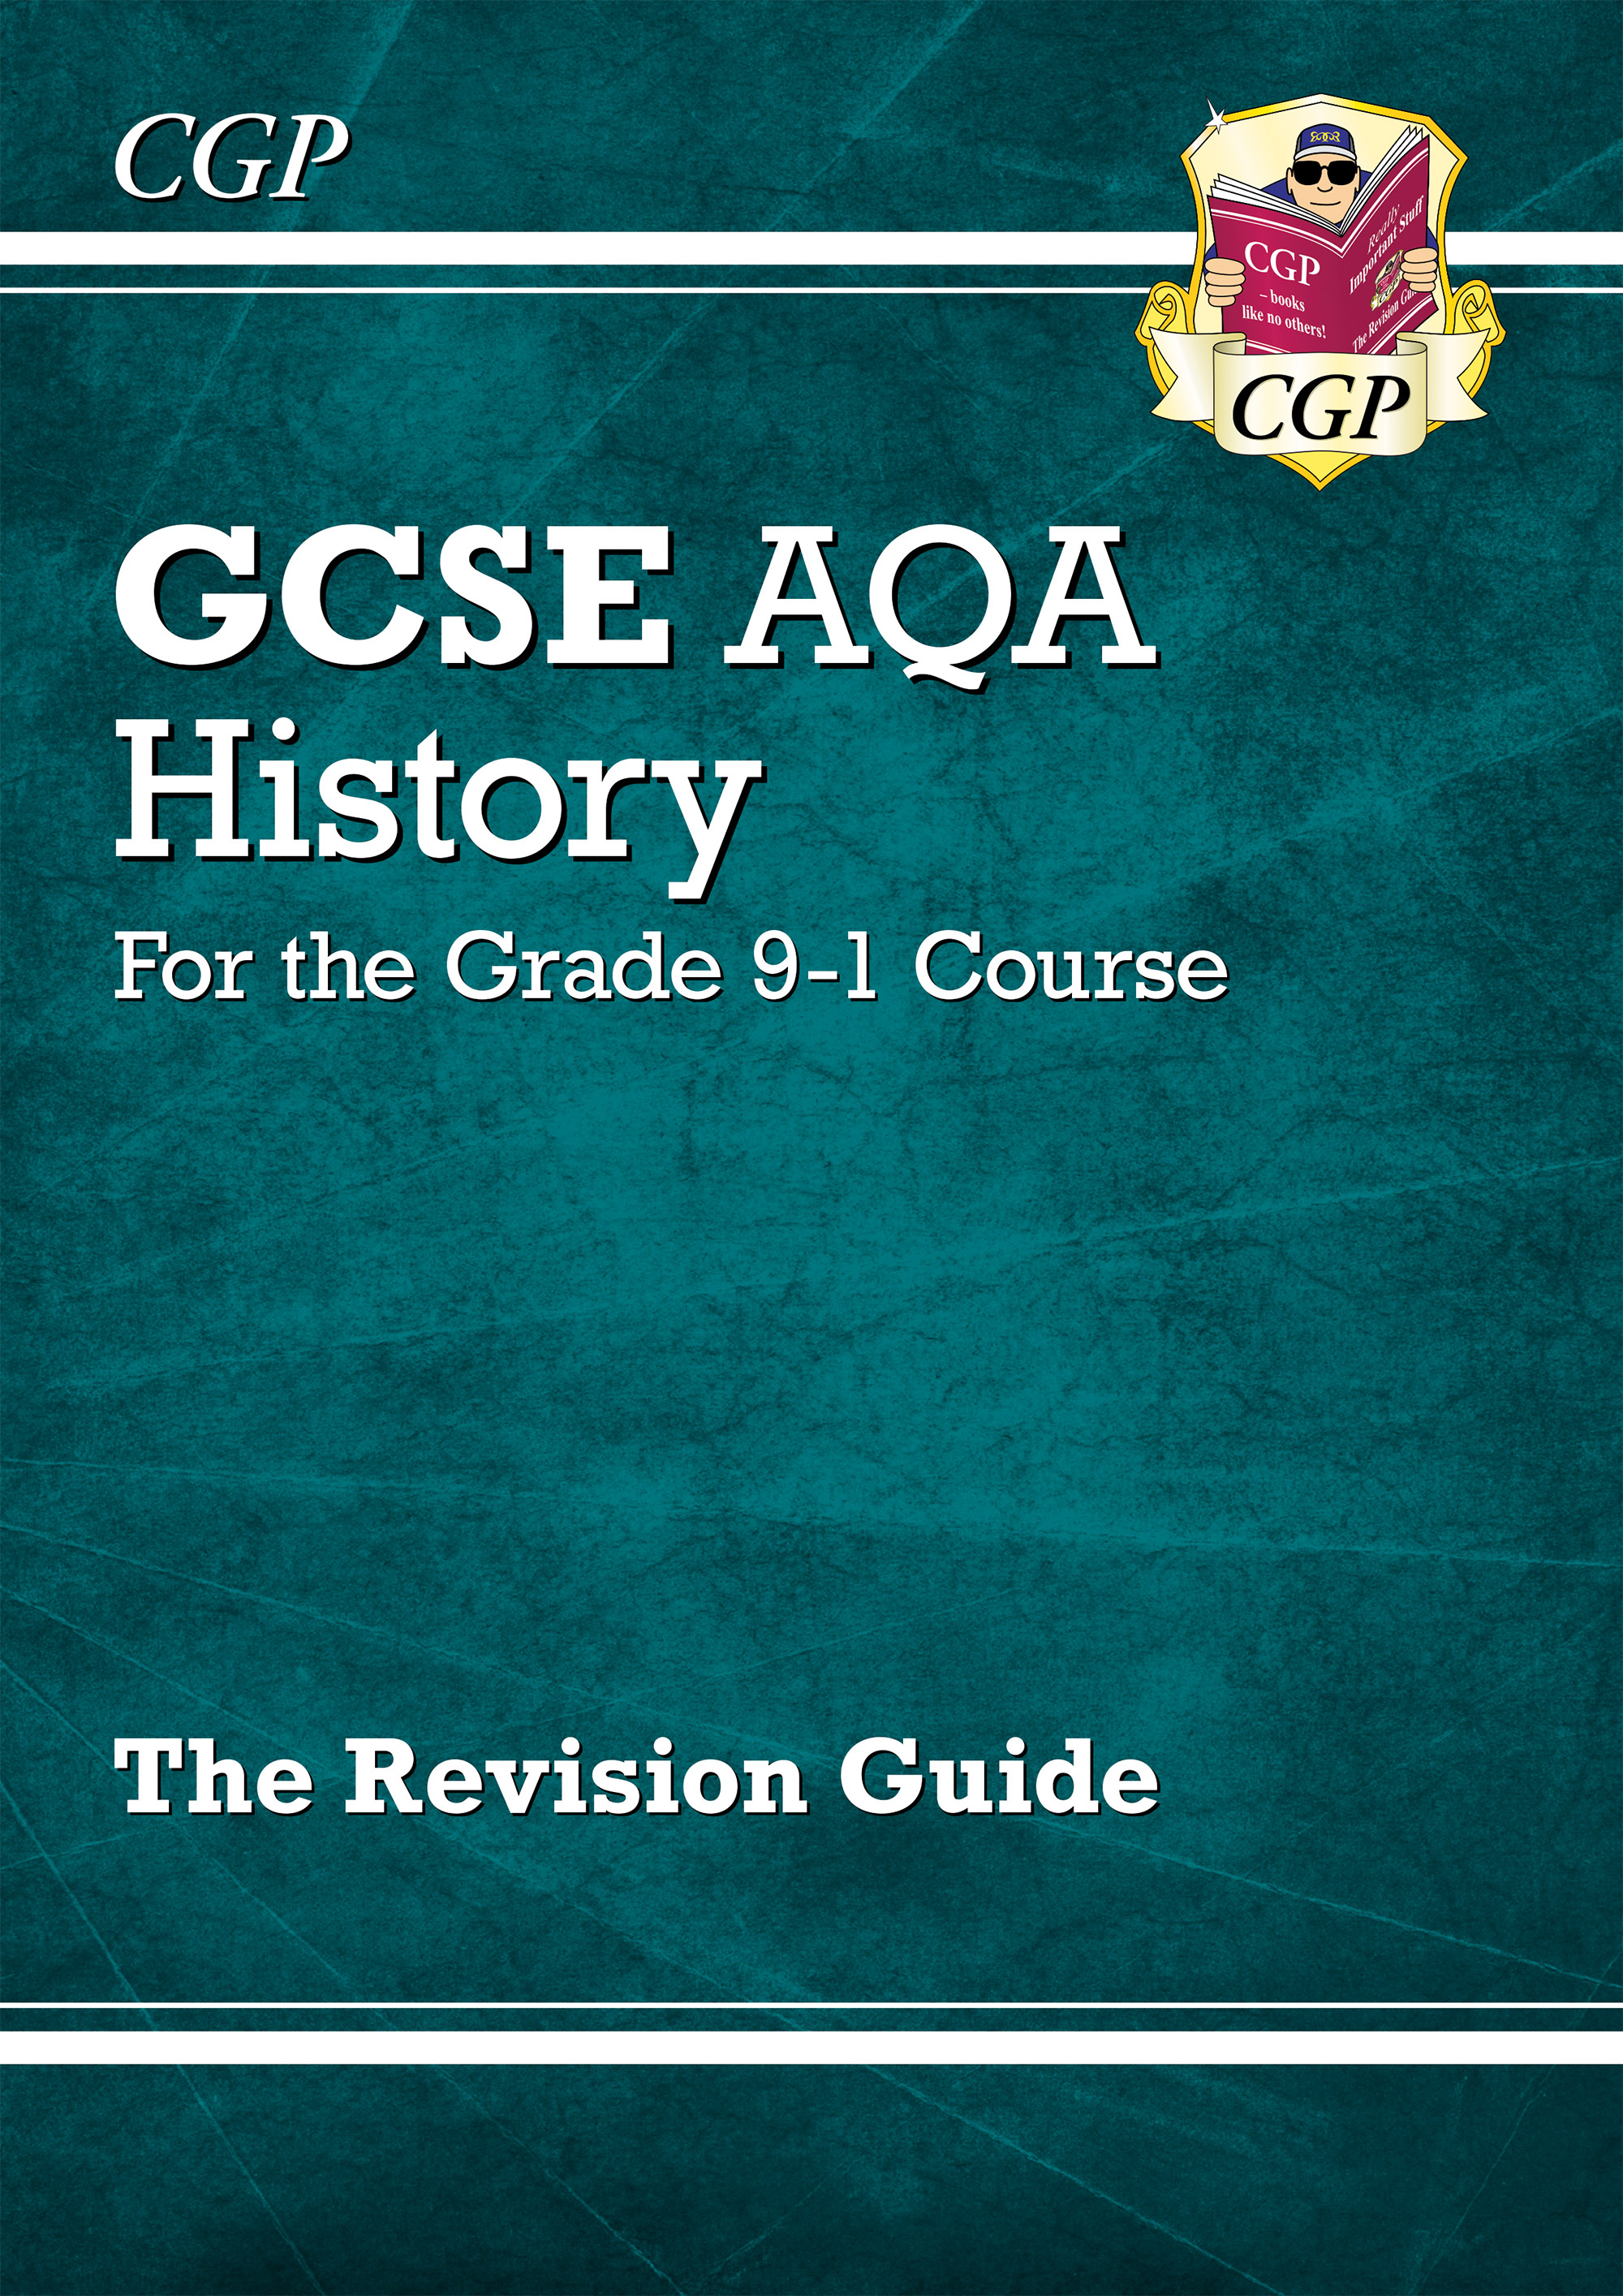 HAR41DK - New GCSE History AQA Revision Guide - for the Grade 9-1 Course